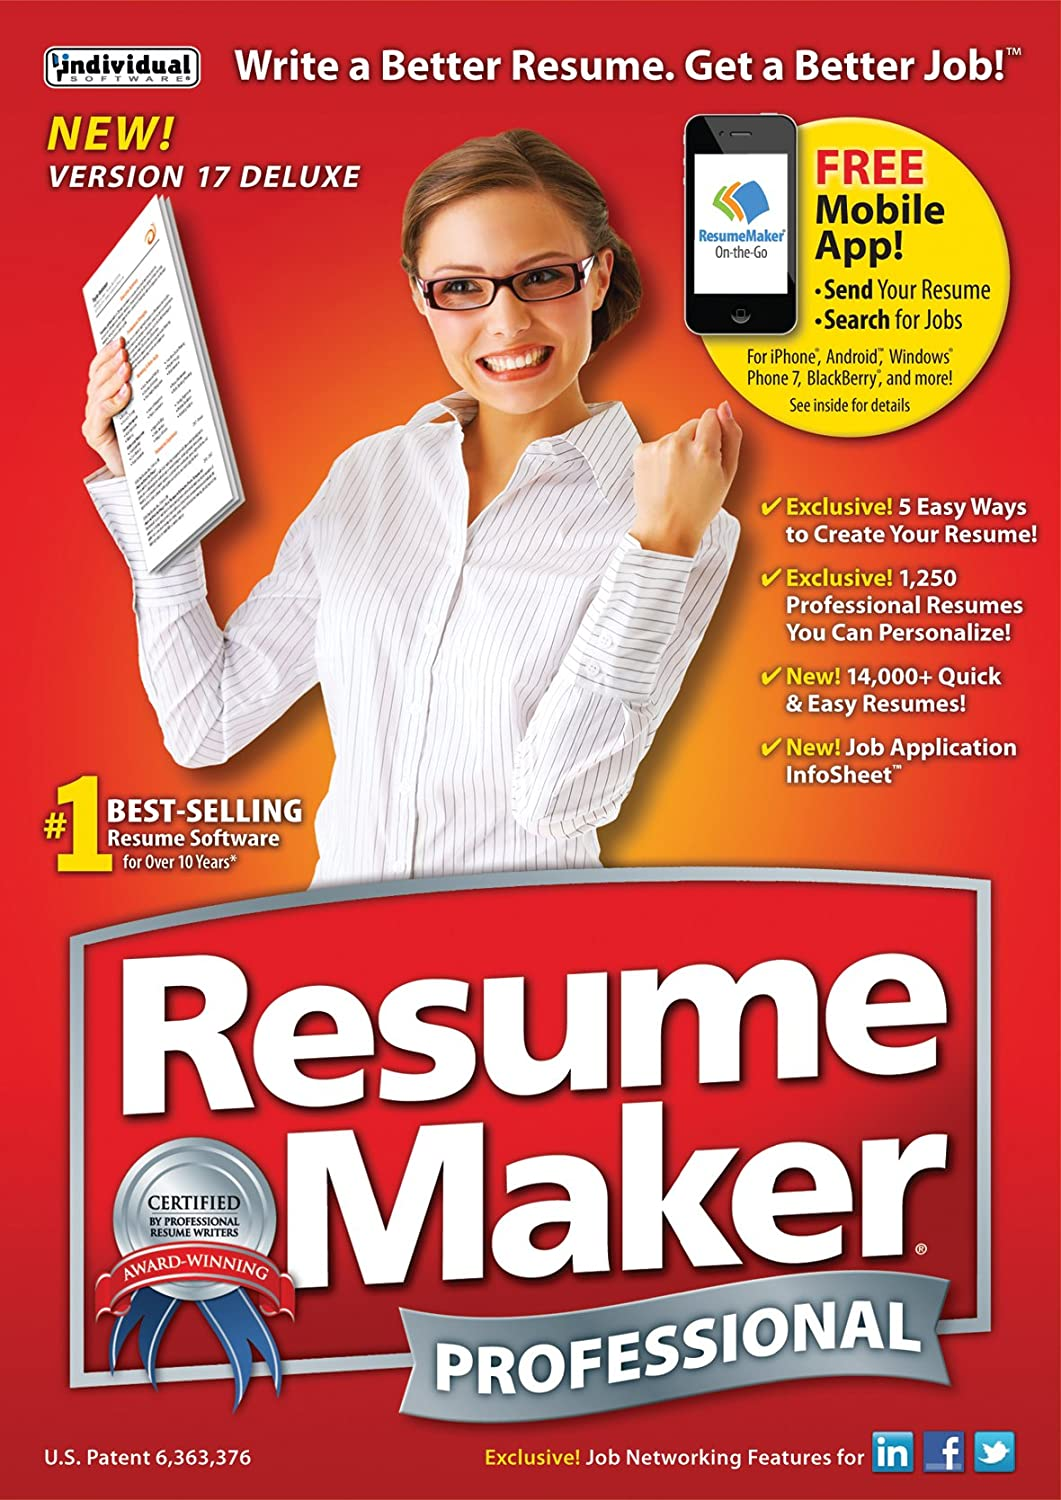 amazoncom resumemaker professional deluxe 17 download software - Resume Maker Program